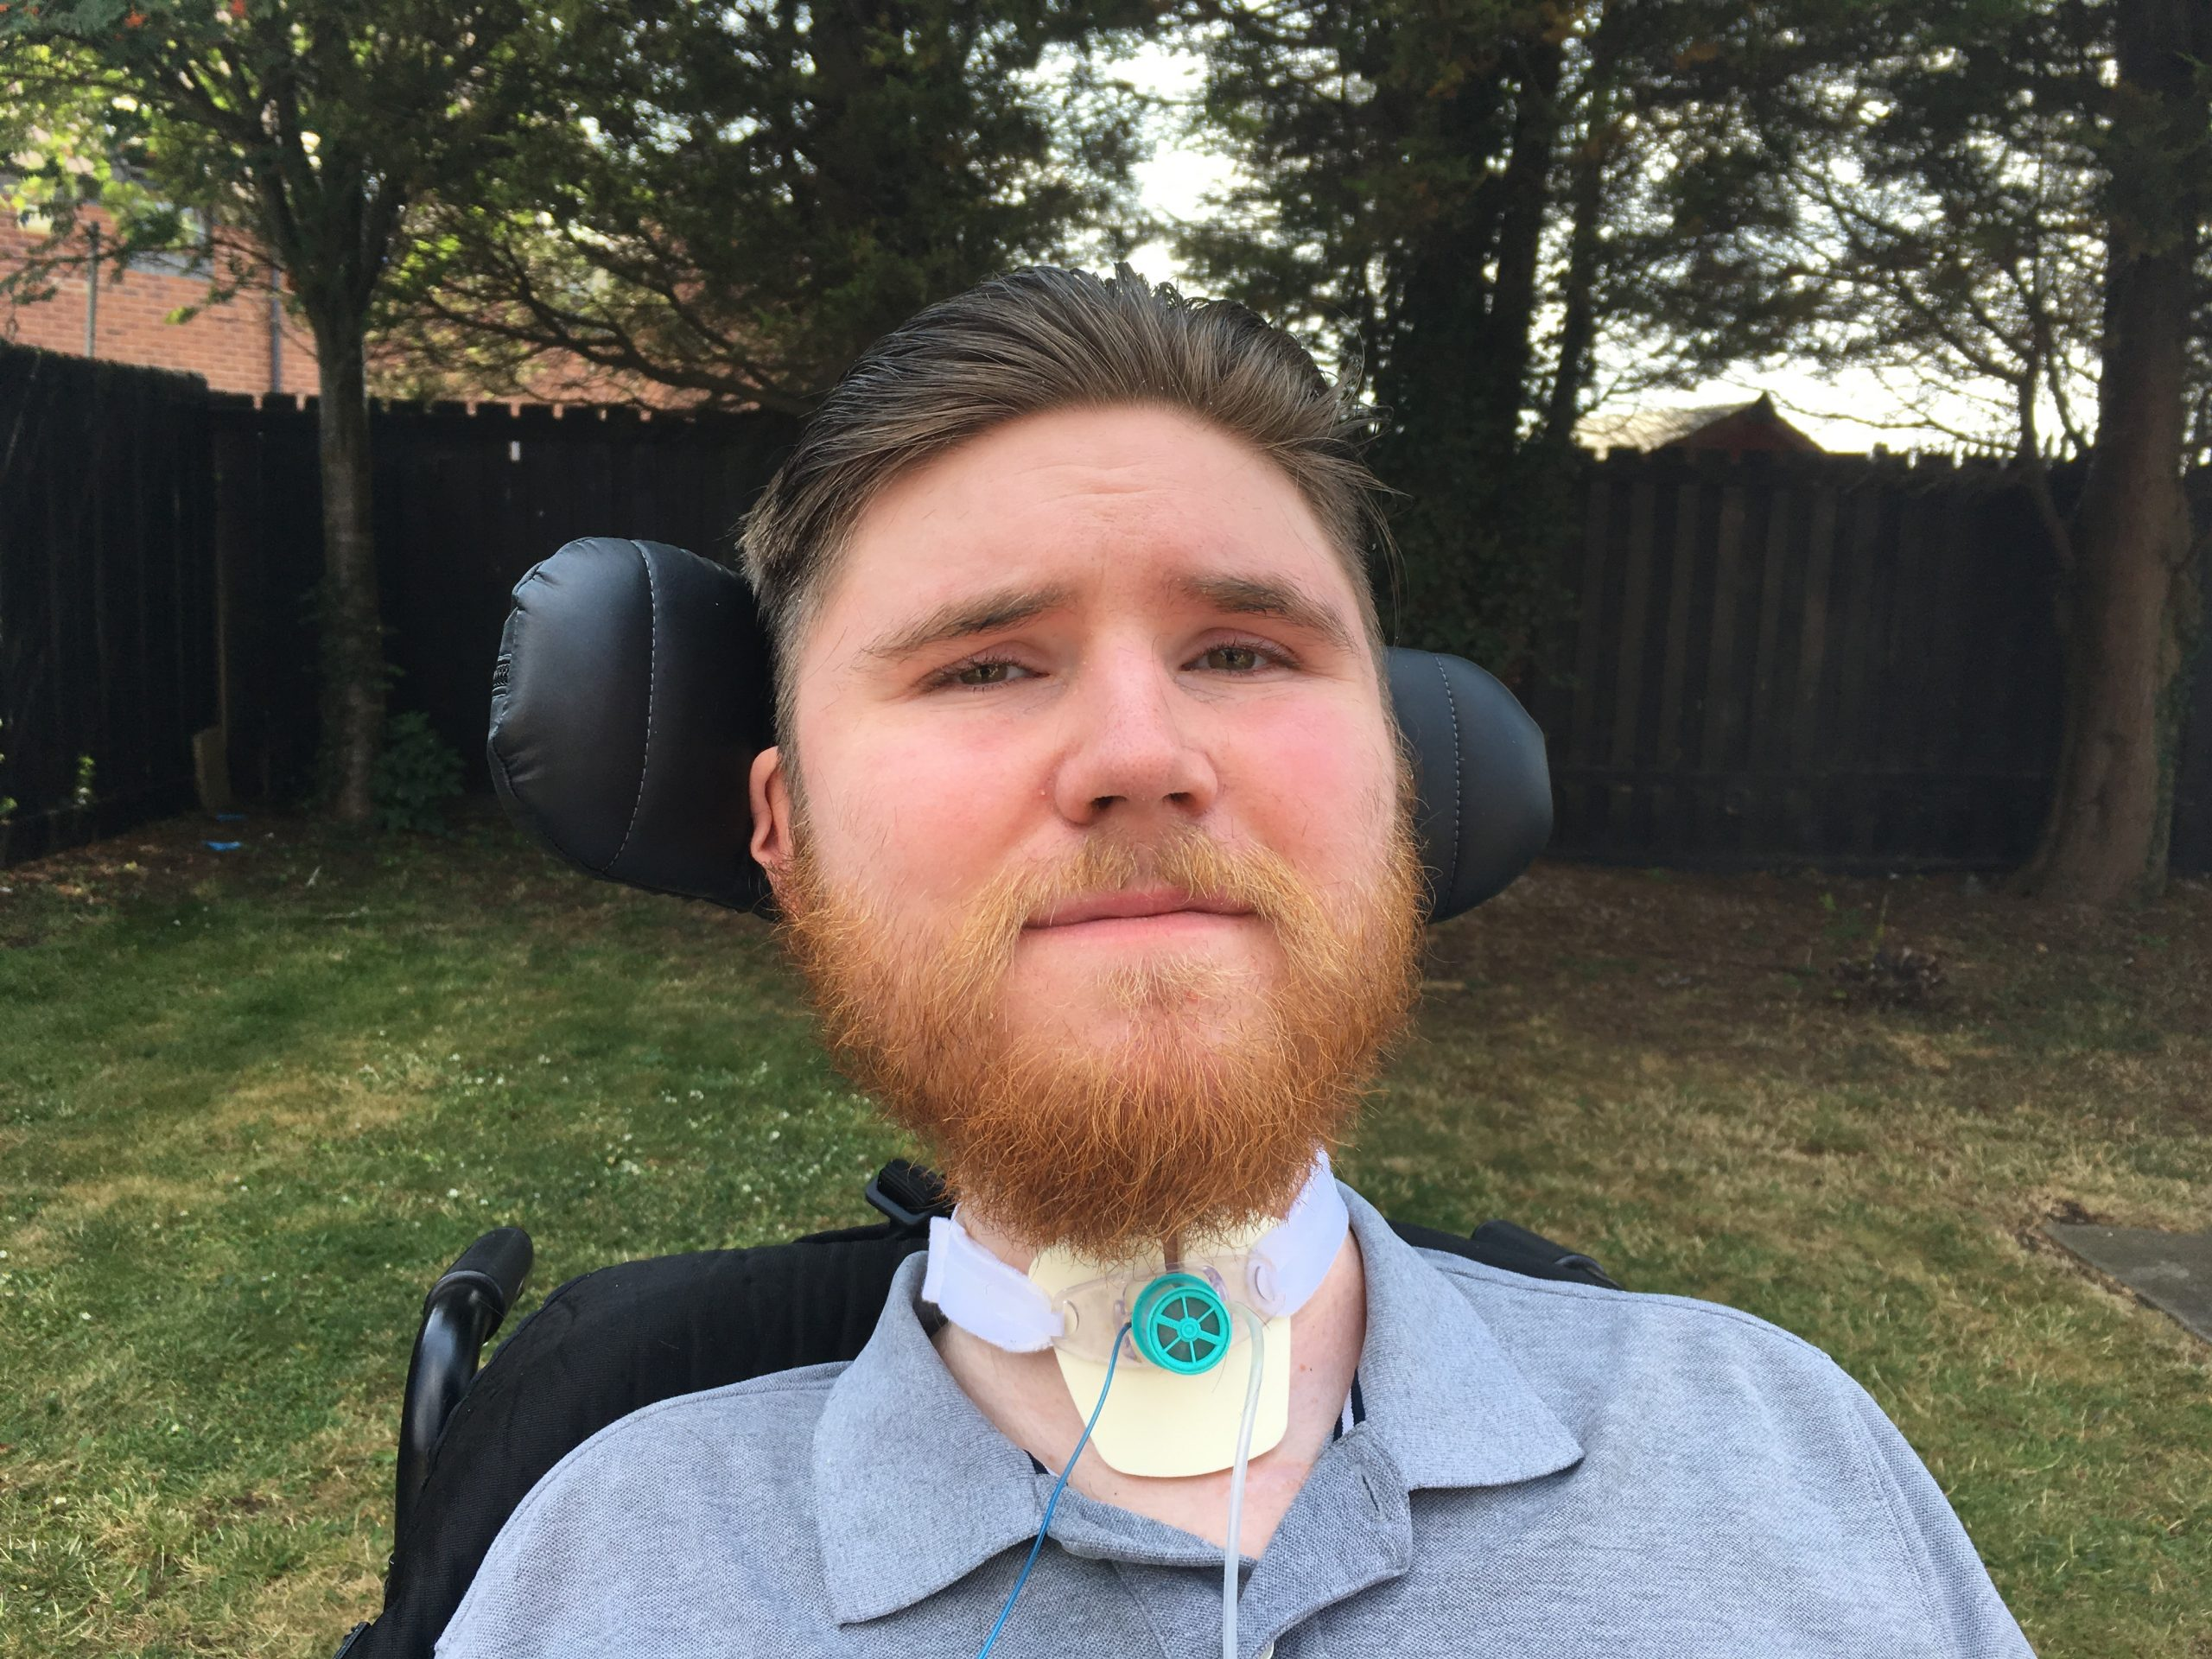 BOBBY SHEARER sitting outside with his tracheostomy showing